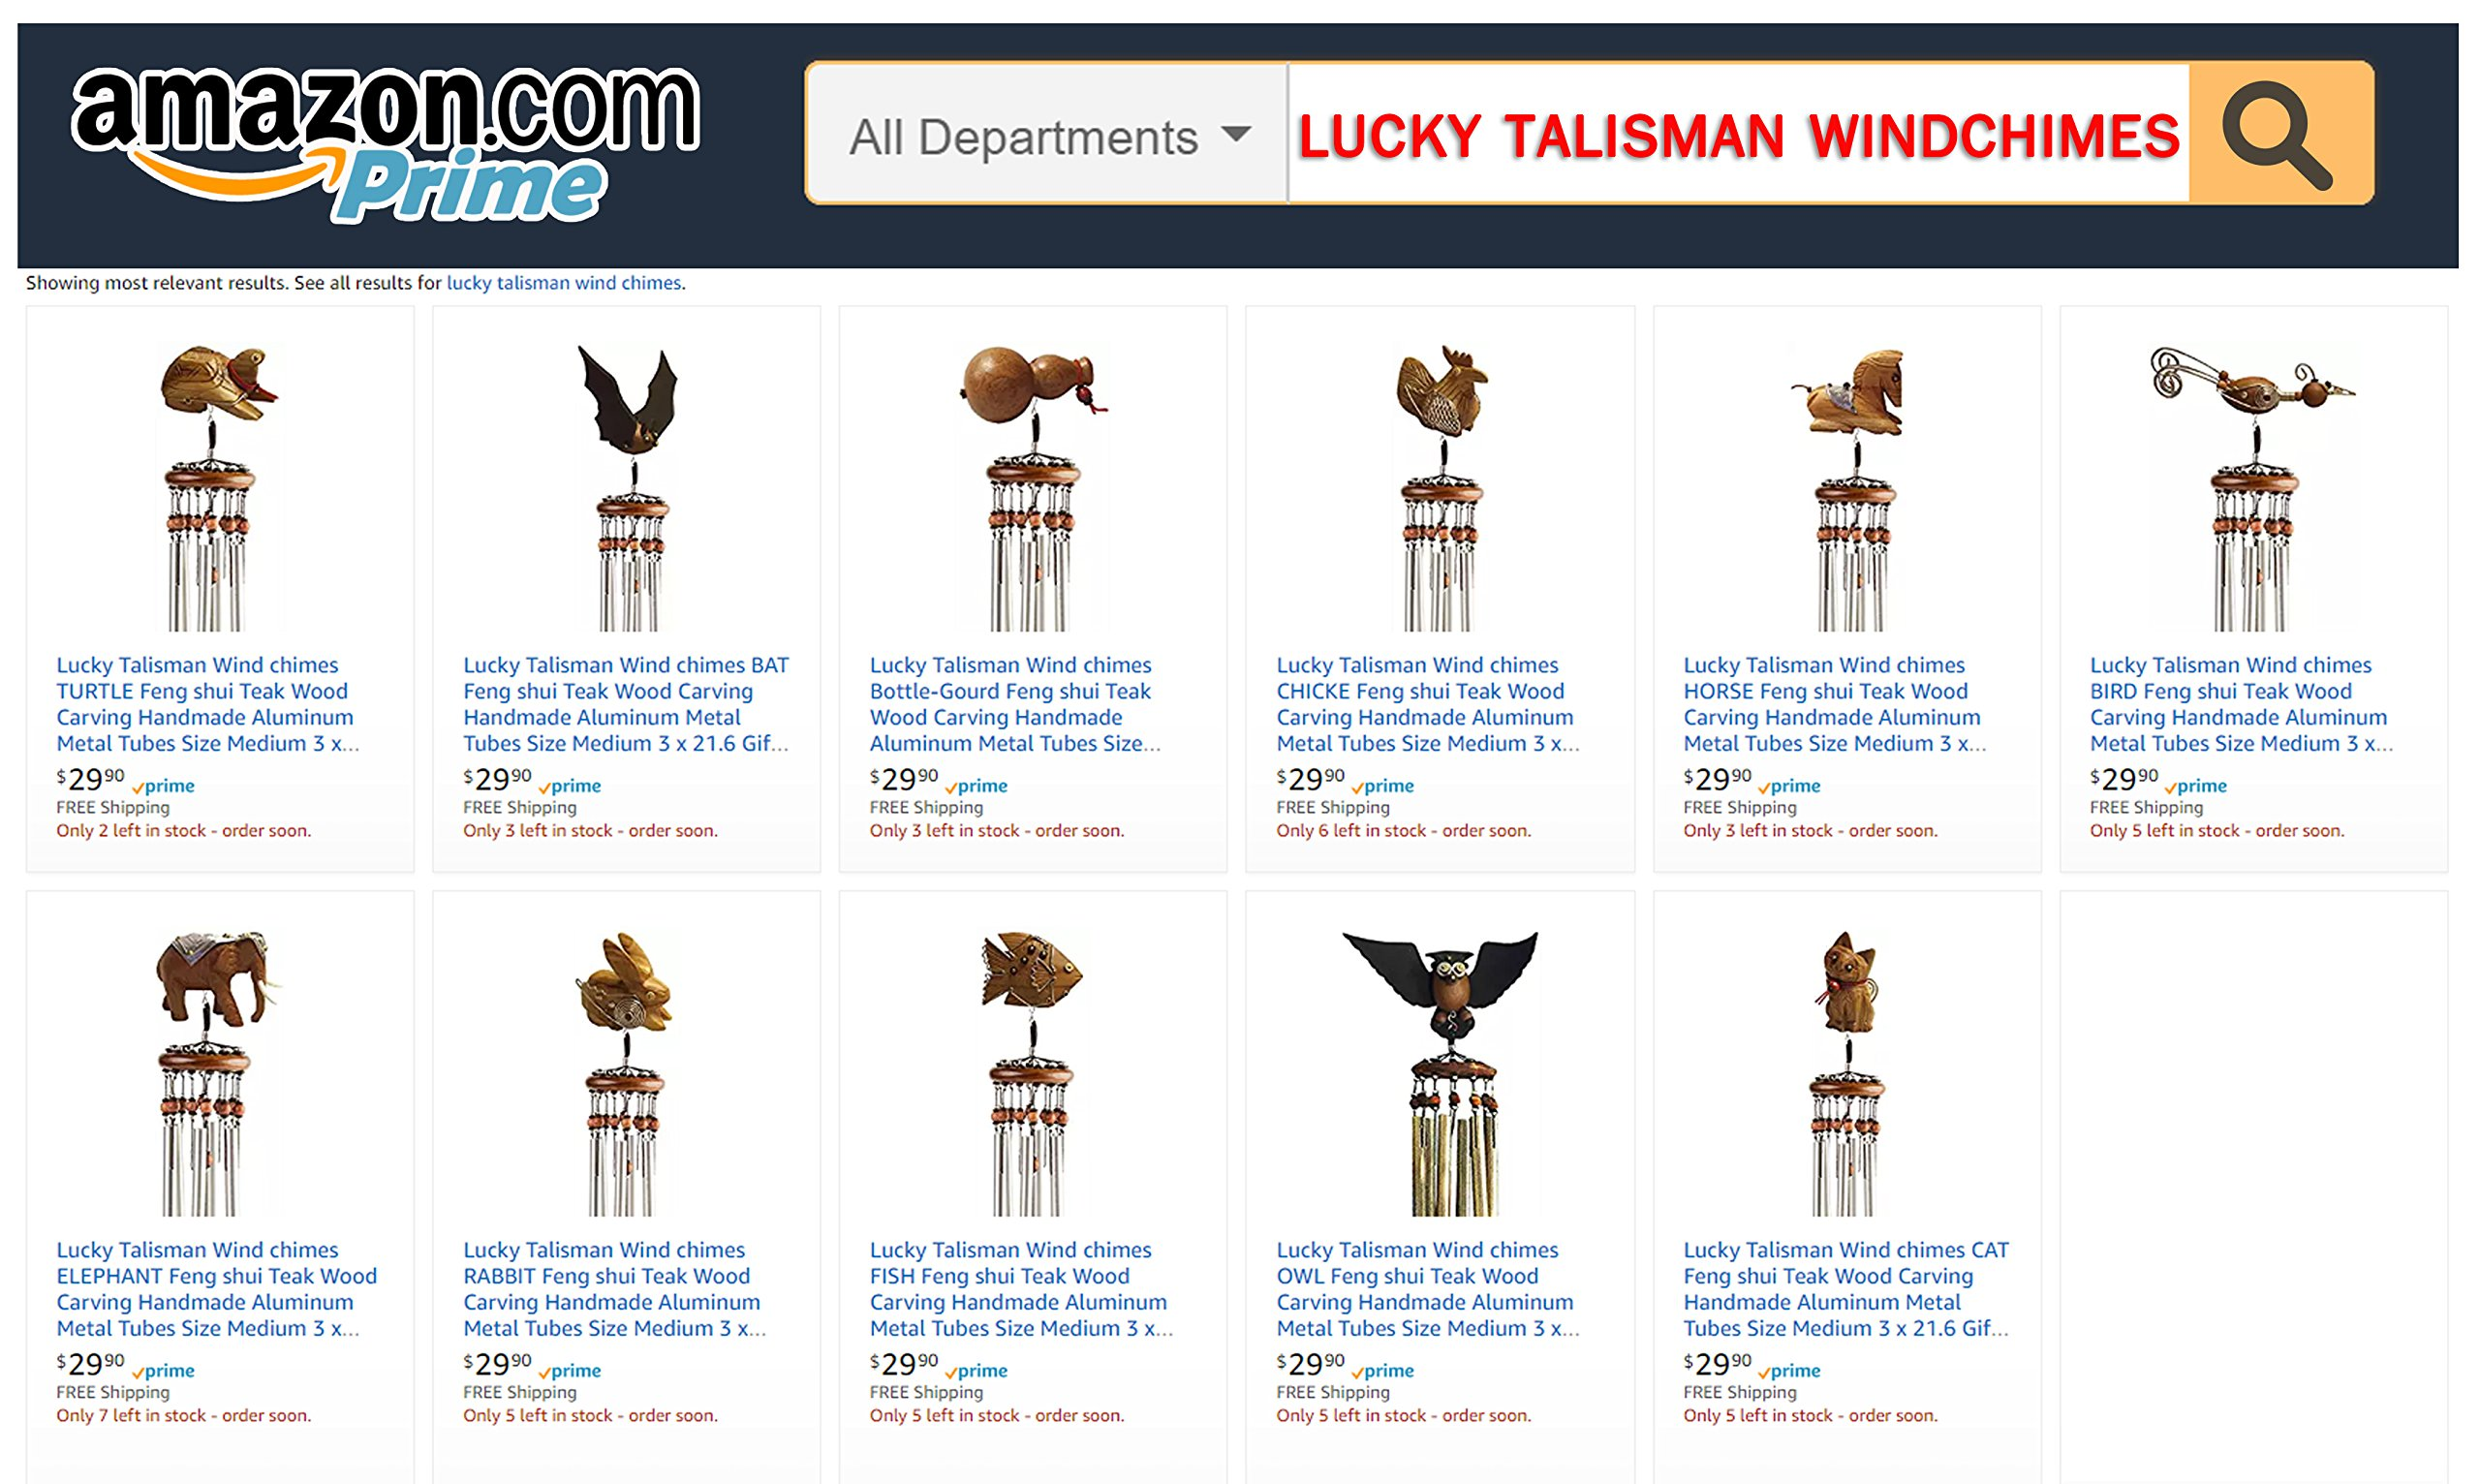 Lucky Talisman Wind Chimes Bottle-Gourd Feng Shui Teak Wood Carving Handmade Aluminum Metal Tubes Size Medium 3 x 21.6 Gift and Souvenir of Thailand for Terrace, Patio, Garden, Outdoor Home Decor. by Lucky Windchimes (Image #7)